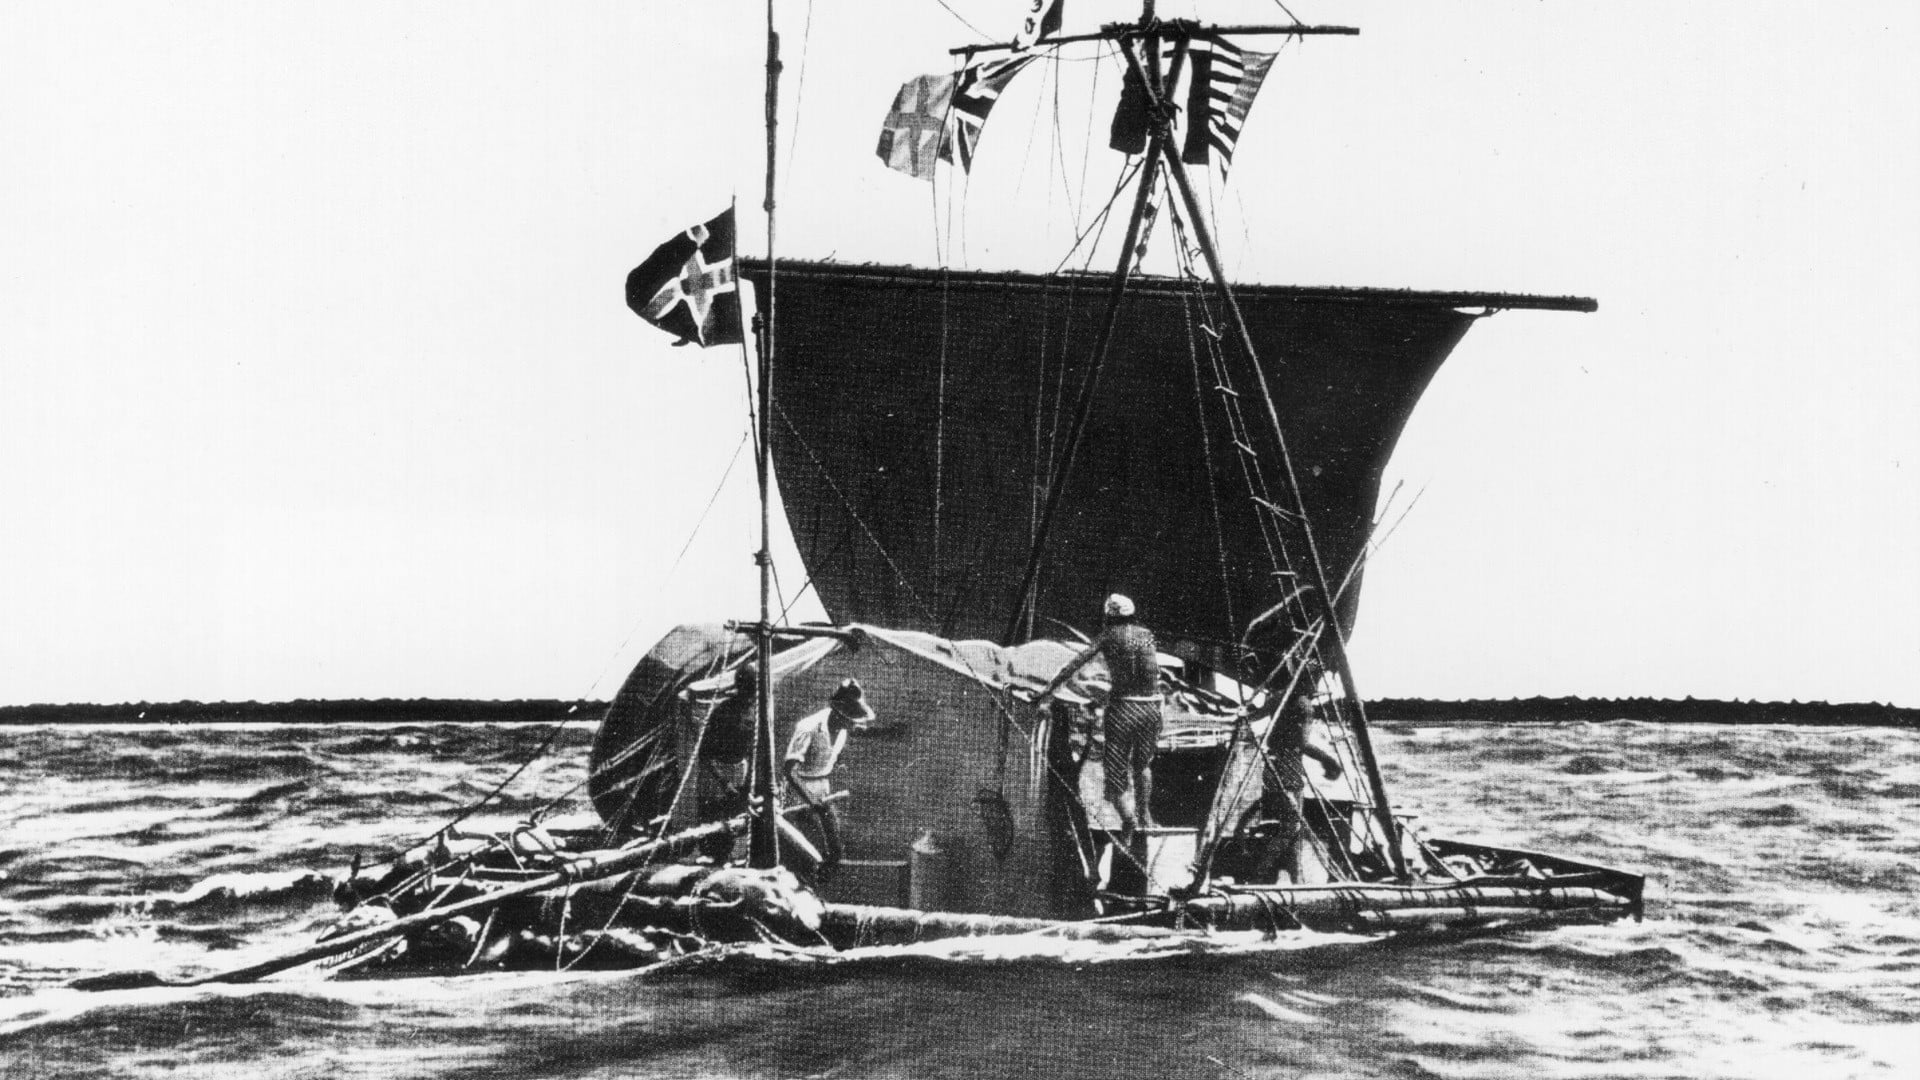 Thor Heyerdahl and companions, Kon-Tiki expedition, 1947.